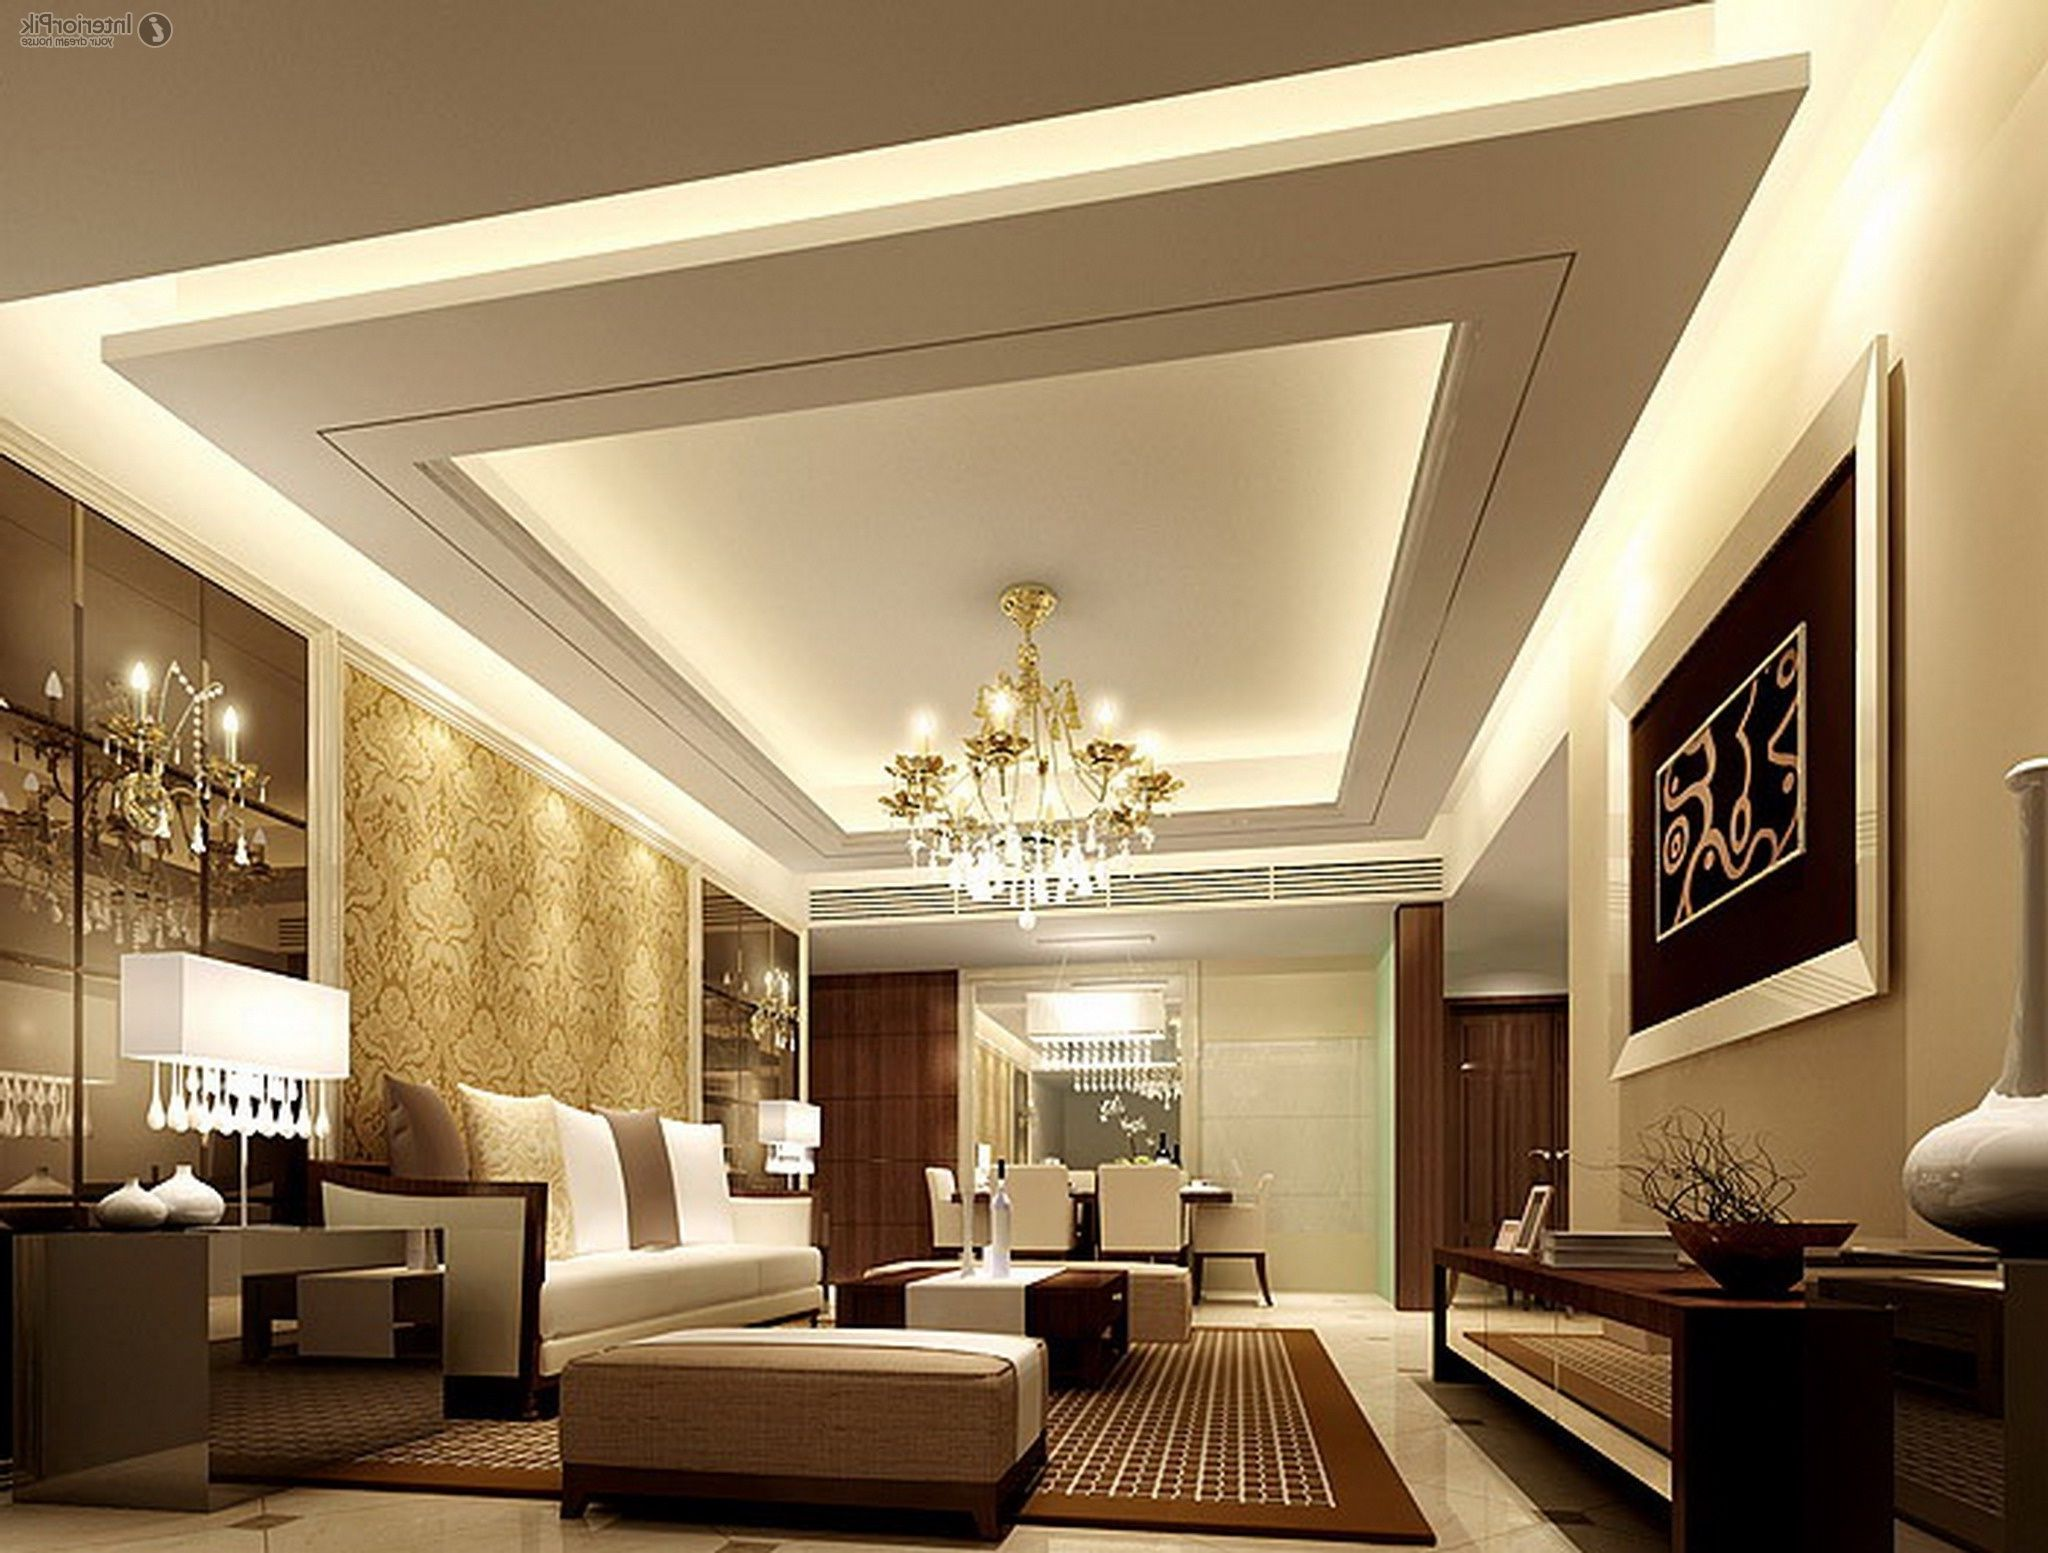 Best 25+ Pop ceiling design ideas on Pinterest | False ceiling for ...